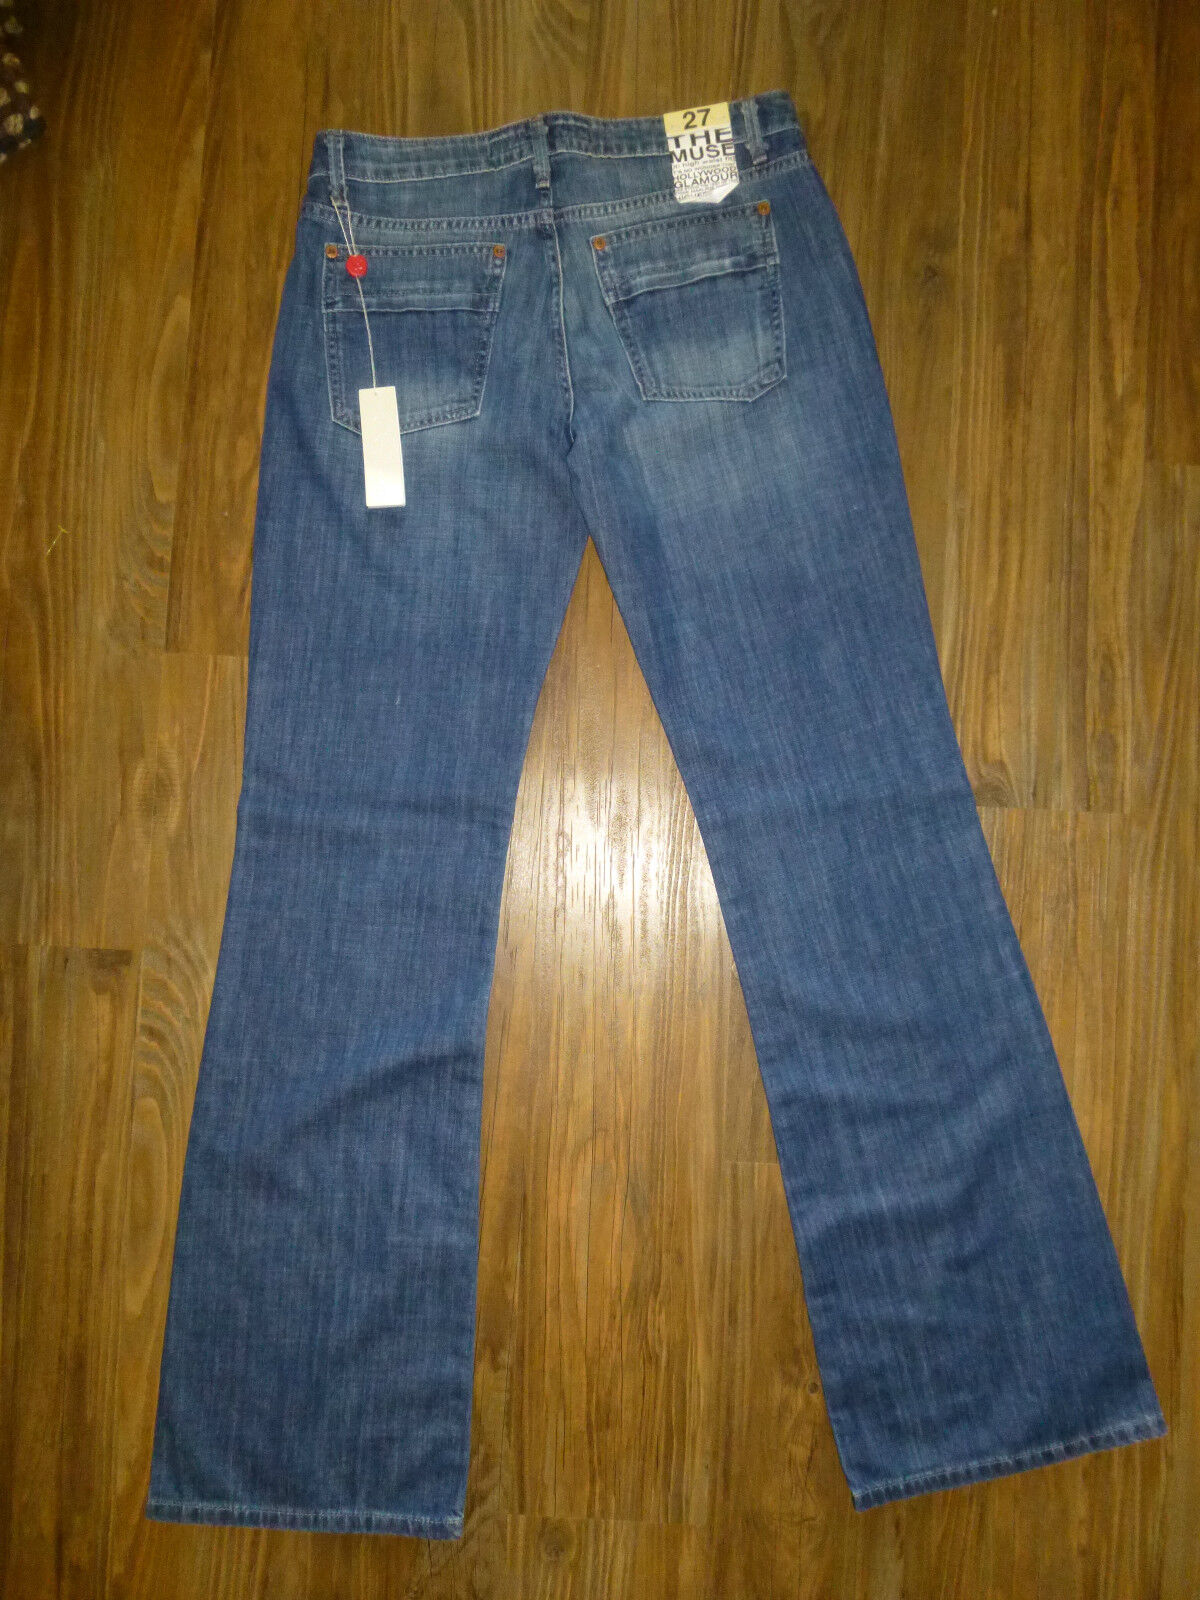 JOE'S JEANS THE MUSE  MED DARK JEANS Women's 27 x 35  NEW WITH TAGS